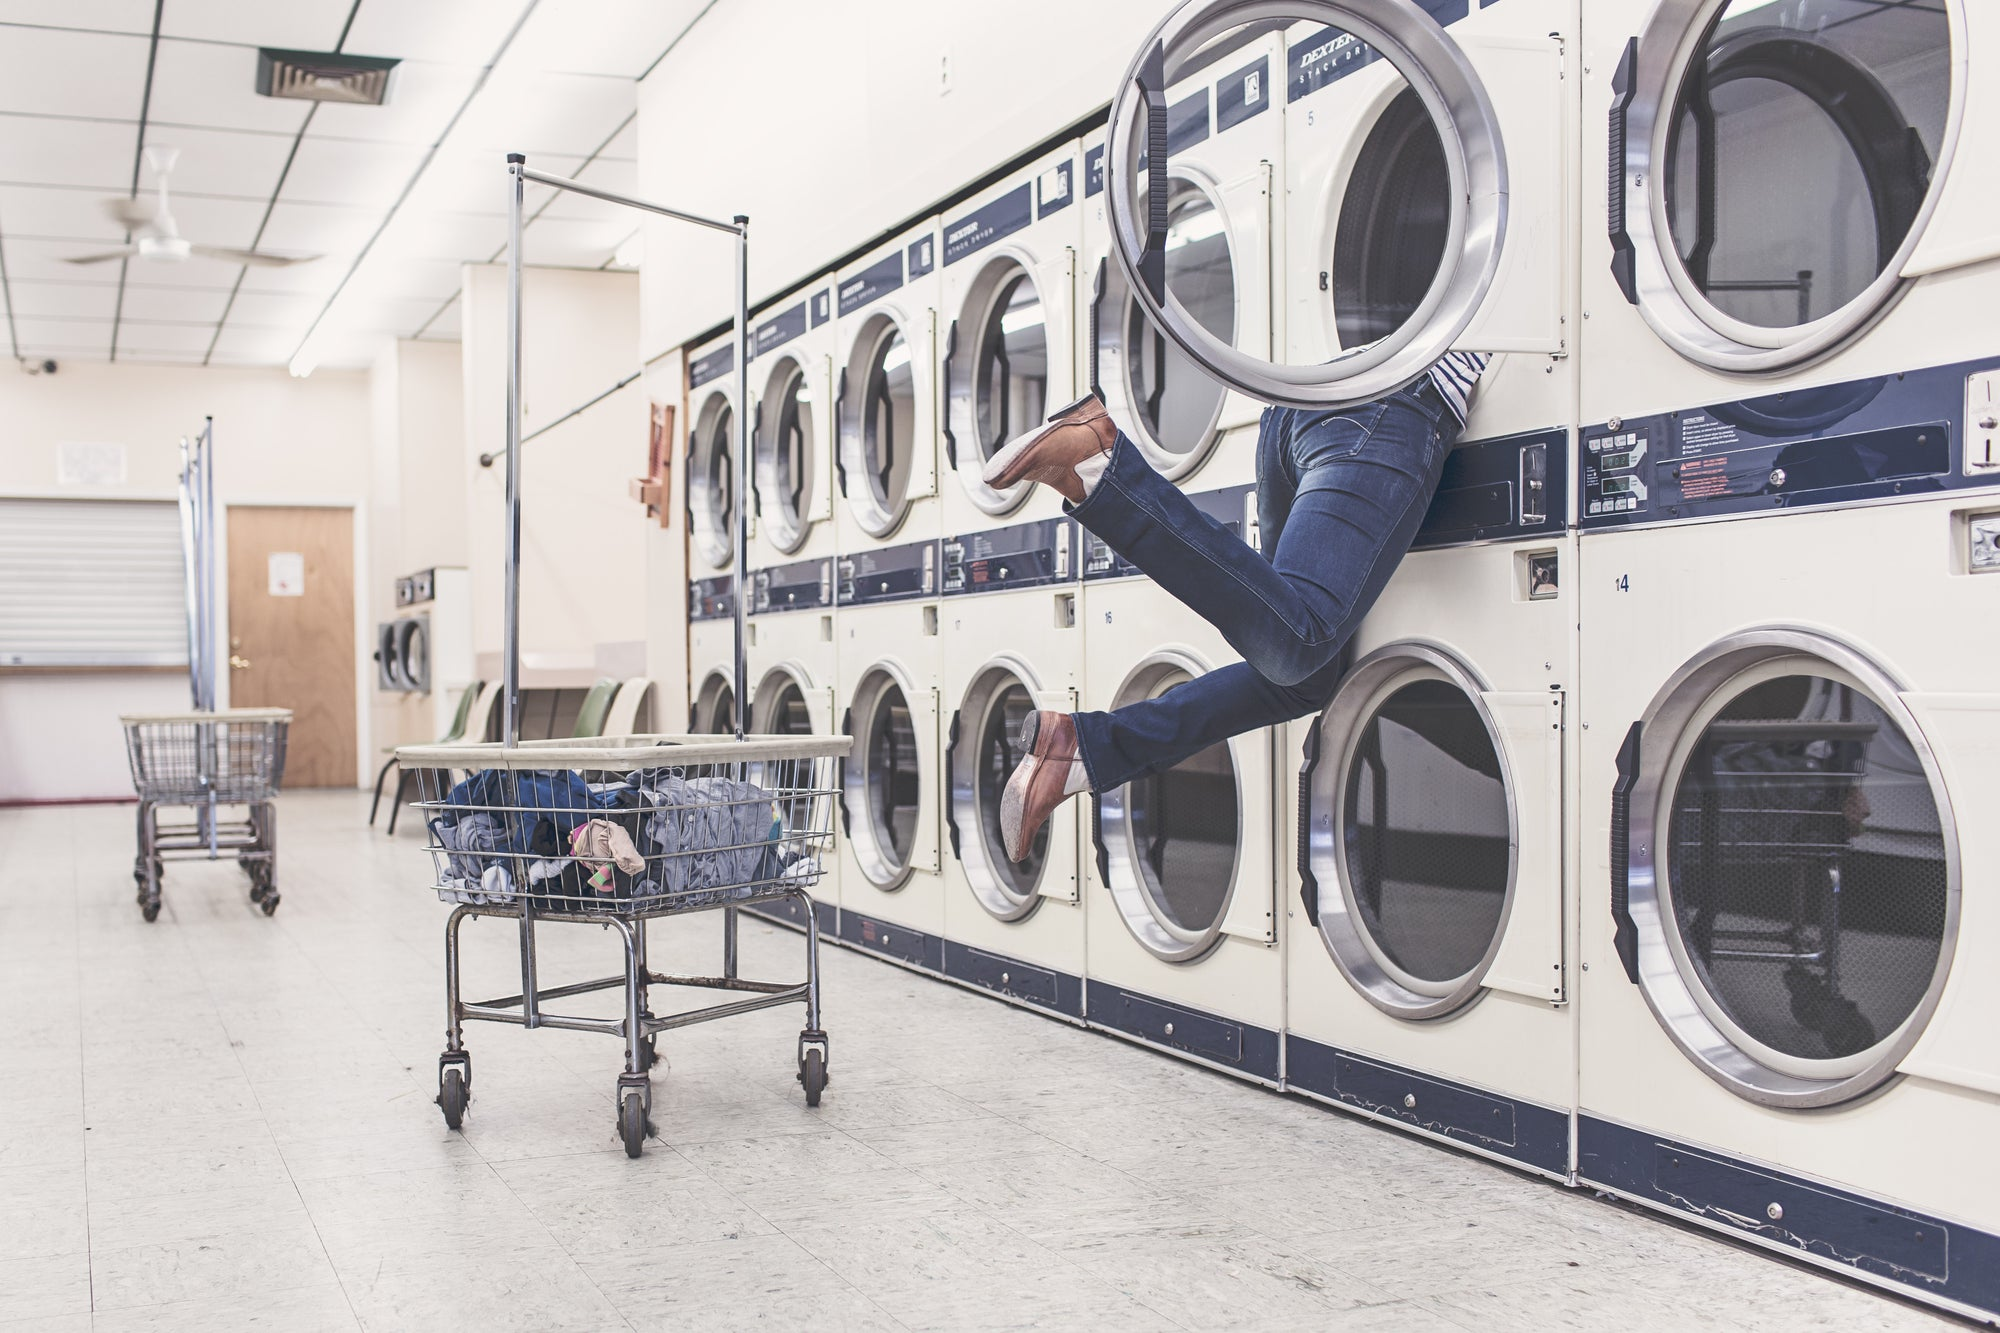 5 Laundry Tips from a College Student